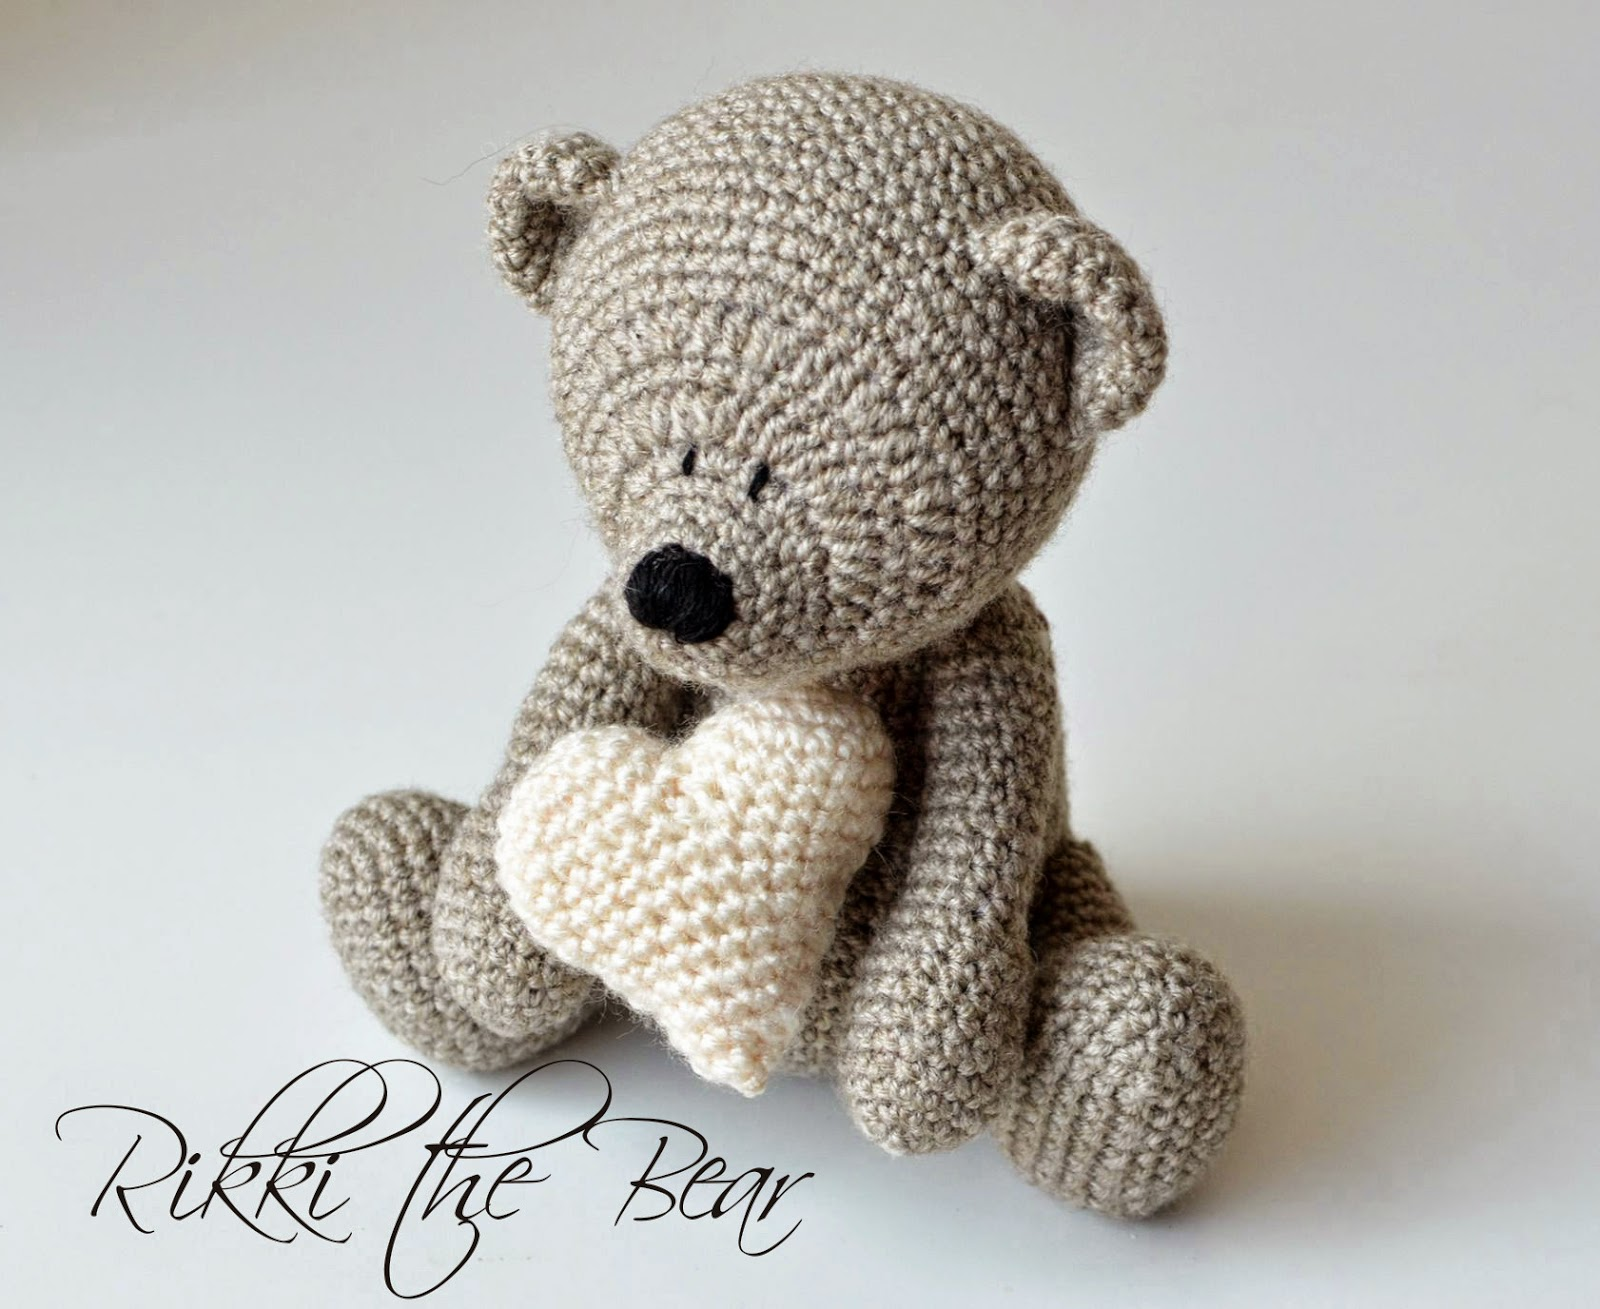 HOW TO #CROCHET A TEDDY BEAR | CROCHET STUFFED ANIMAL | BAGODAY ... | 1309x1600